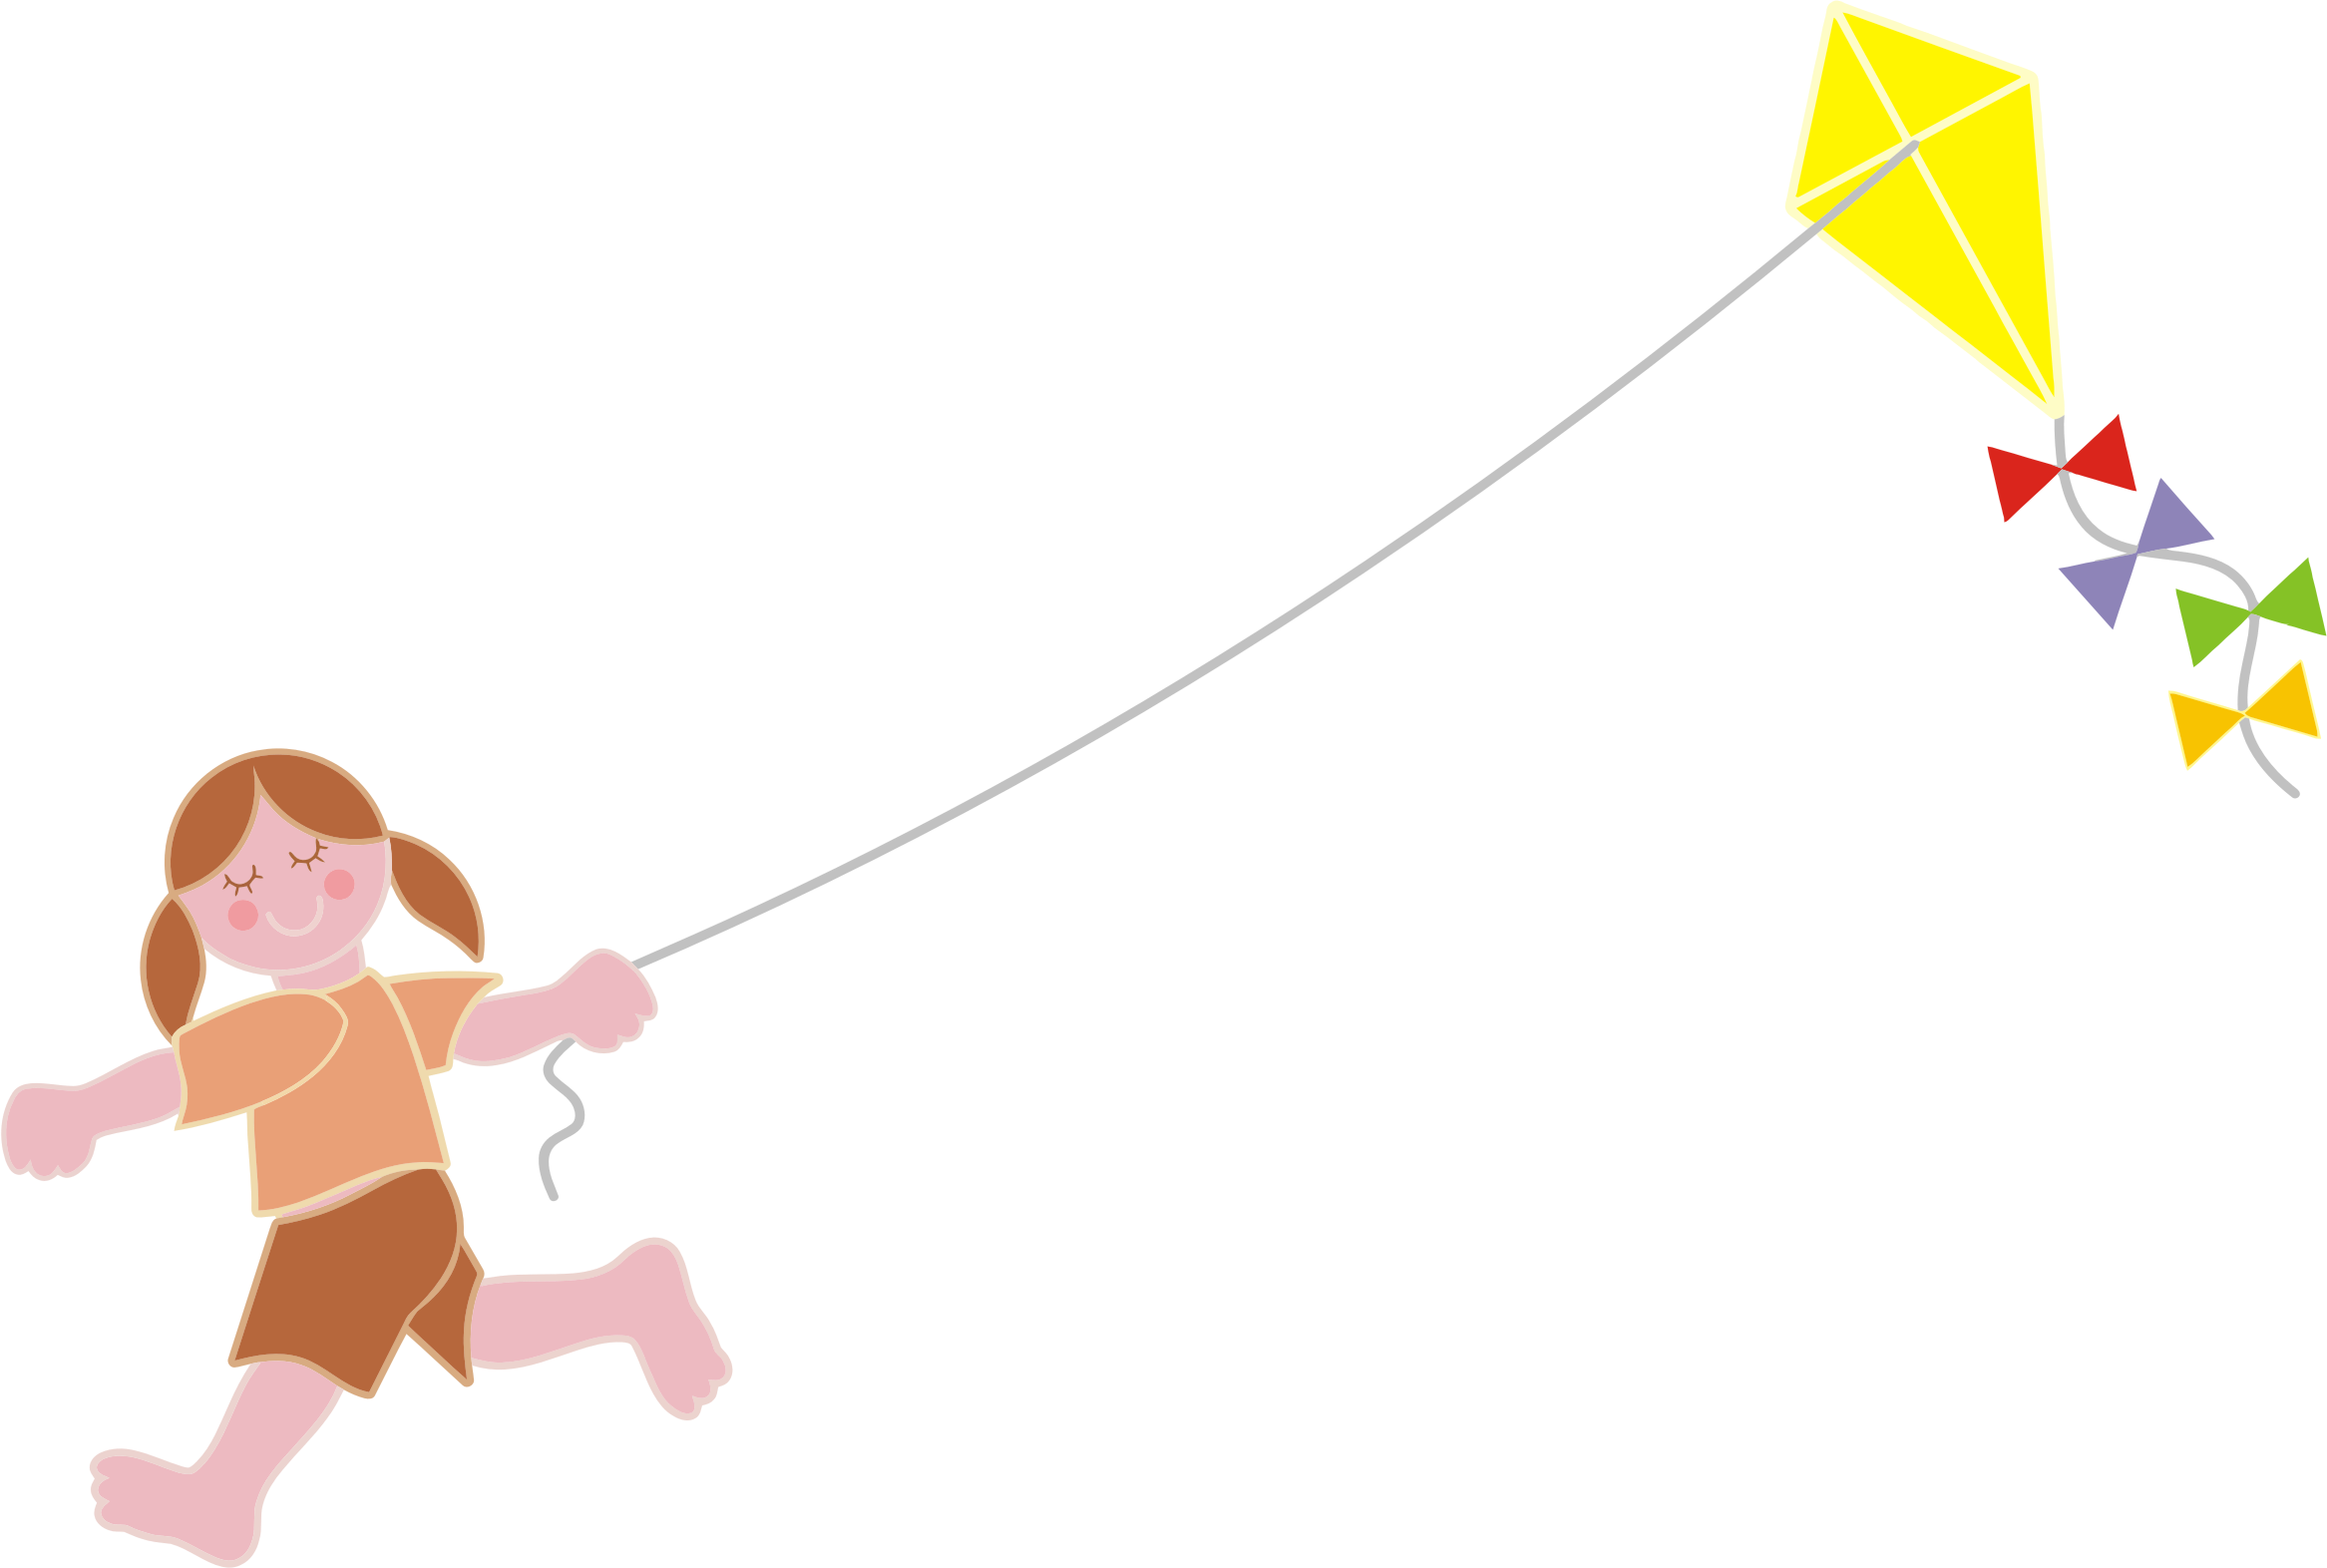 clipart kite flying - photo #49